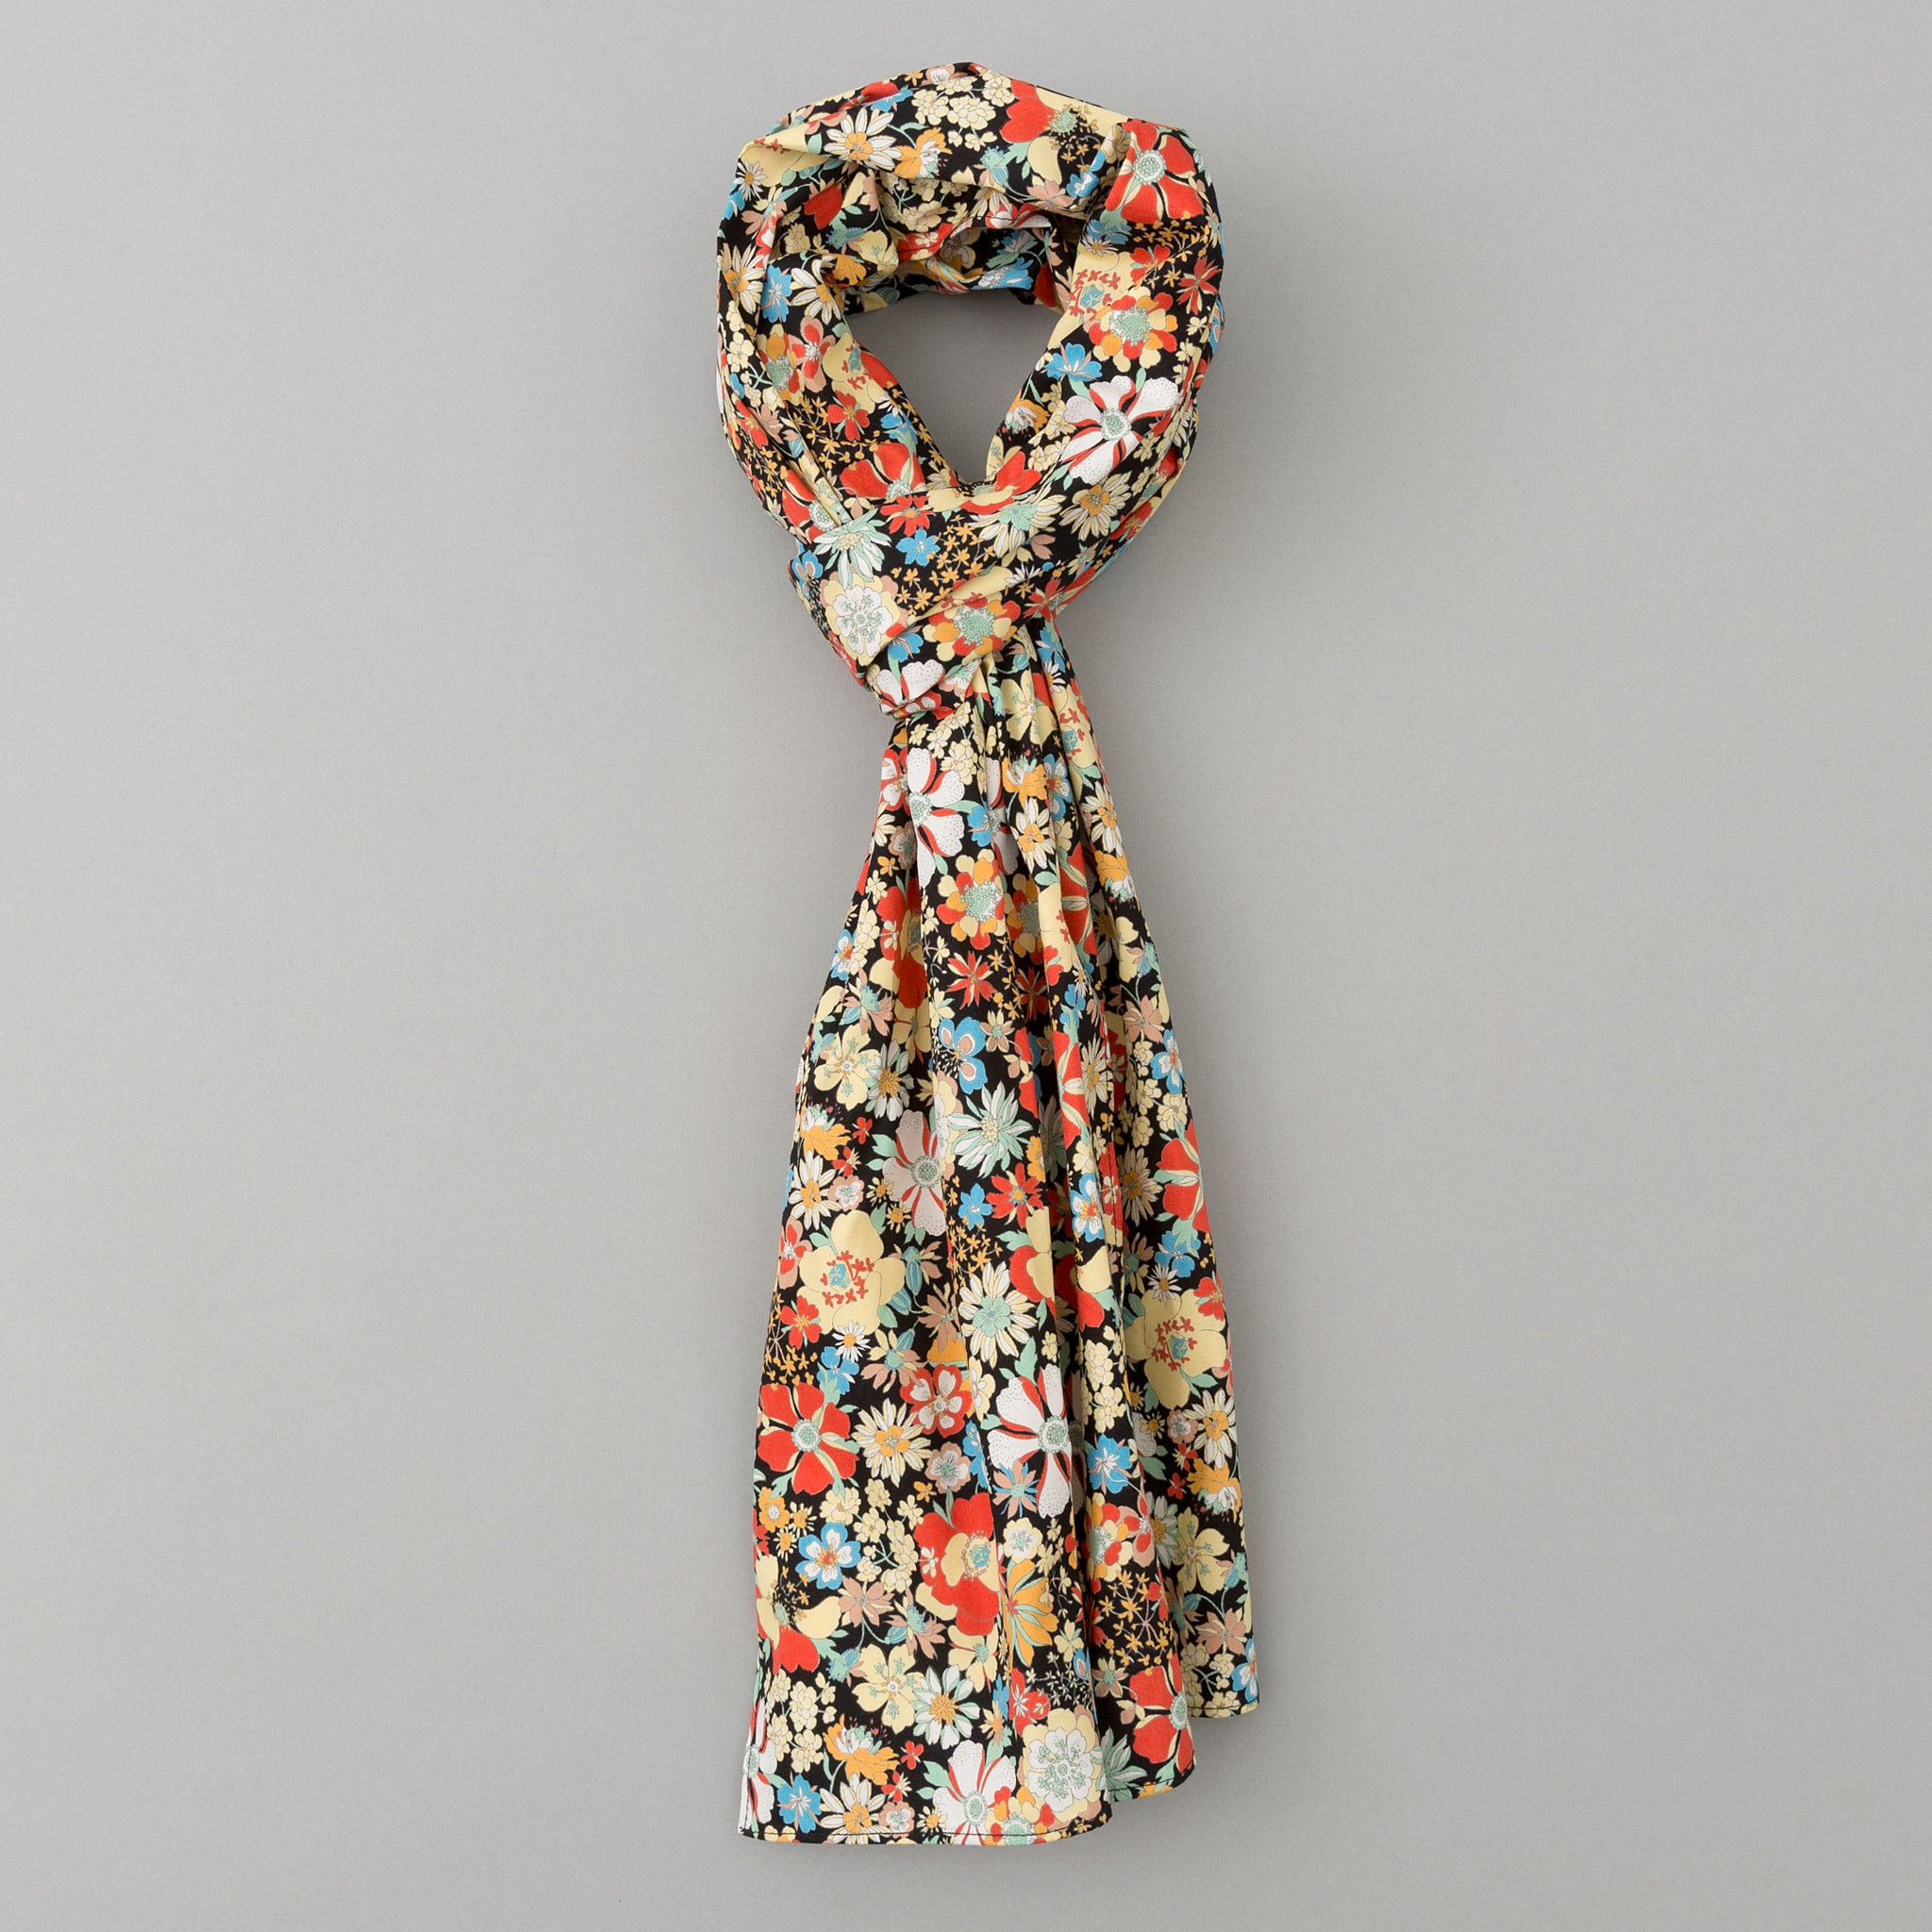 The Hill-Side - Psychedelic Floral Print Scarf, Black - SC1-489 - image 1